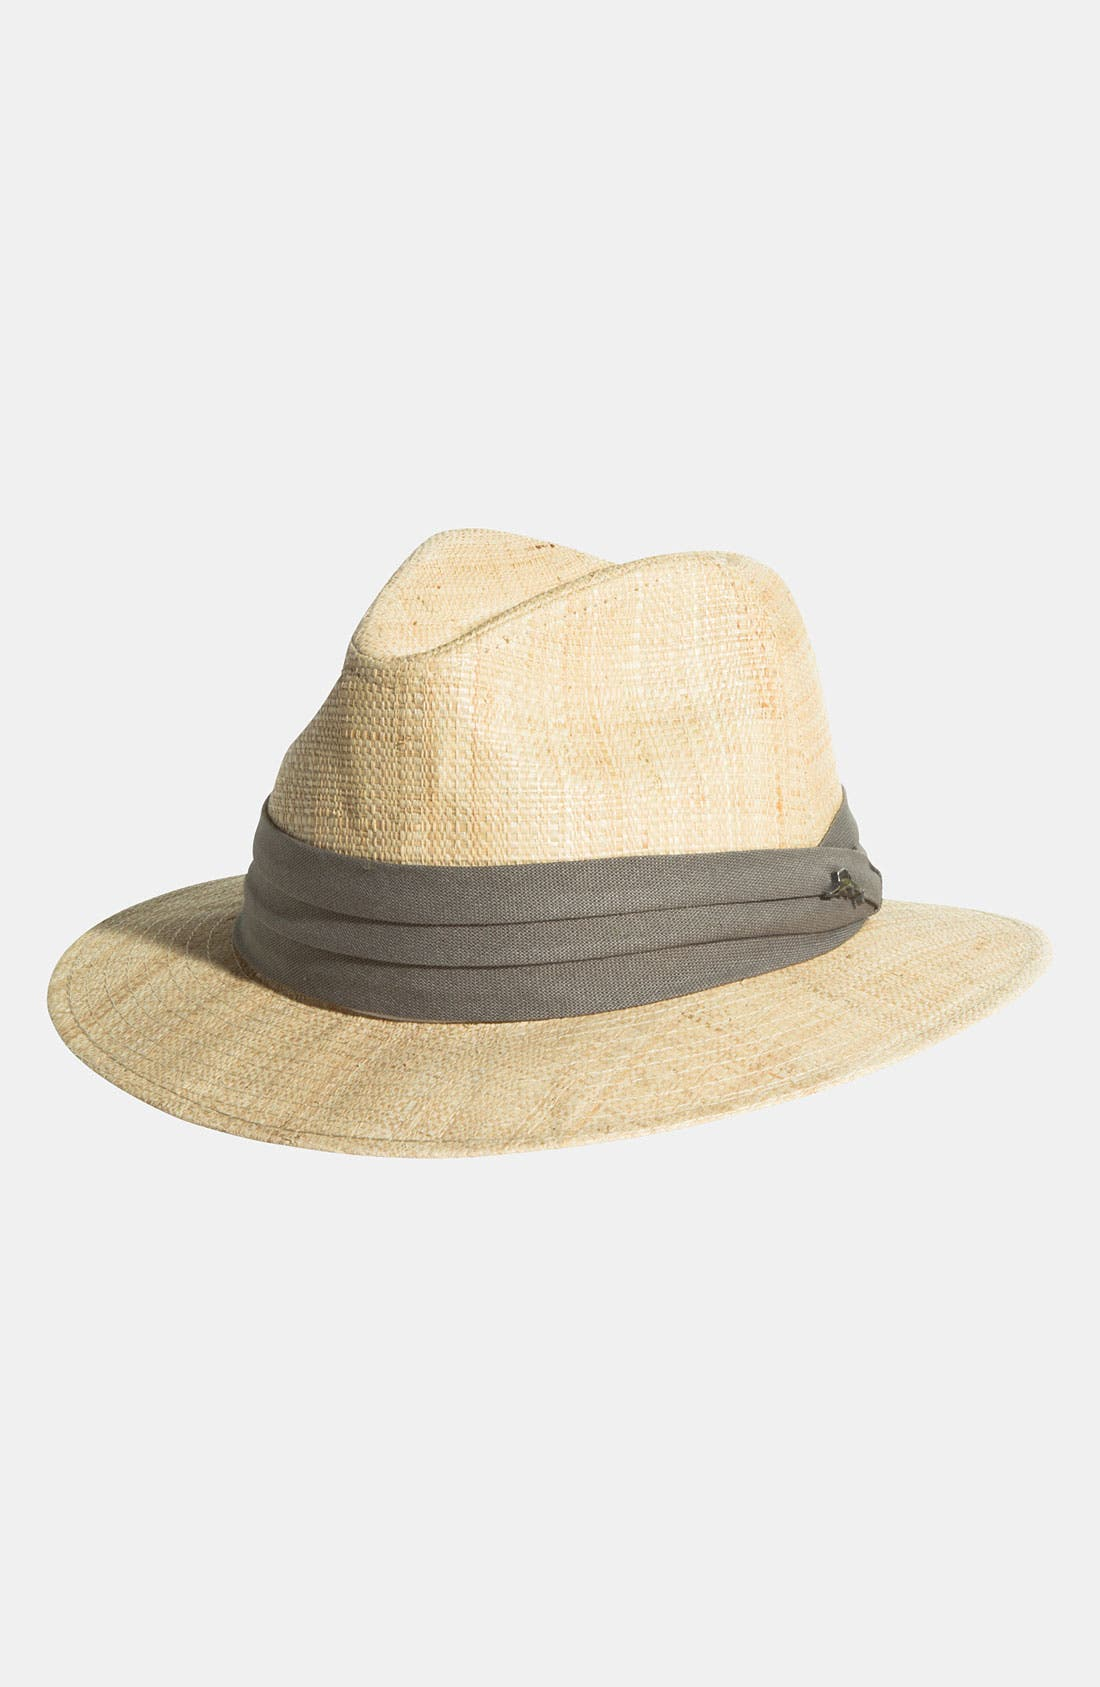 Tommy Bahama 'Rough Cotton' Raffia Fedora